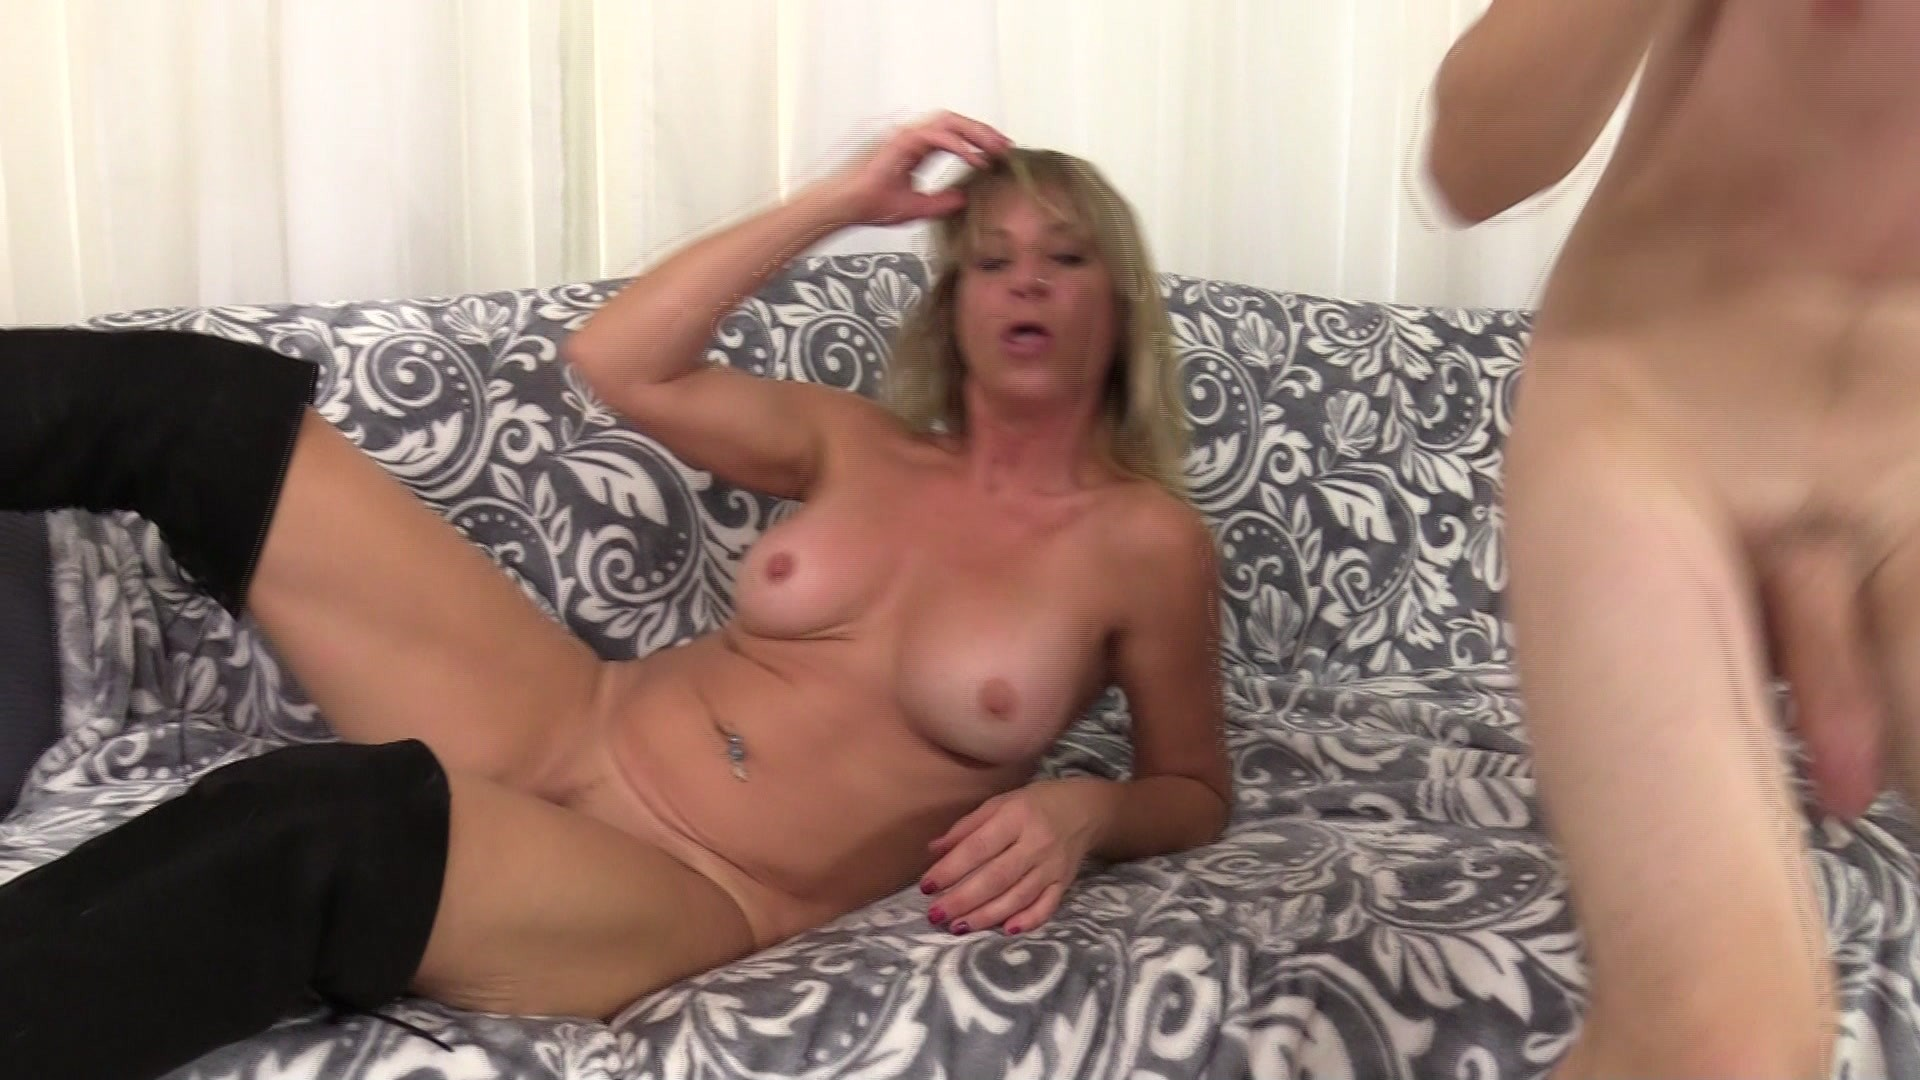 over 50 fuckers | rookie nookie productions | sugarinstant